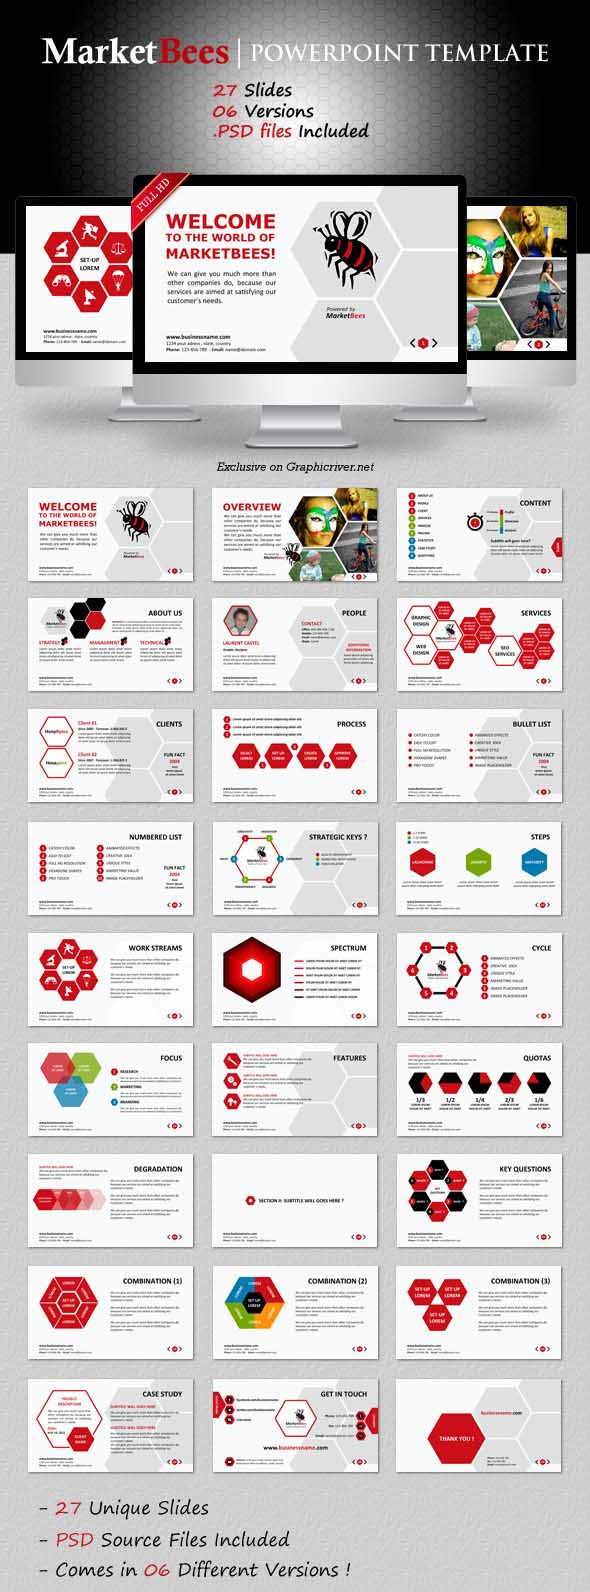 Marketbees-Powerpoint-Template